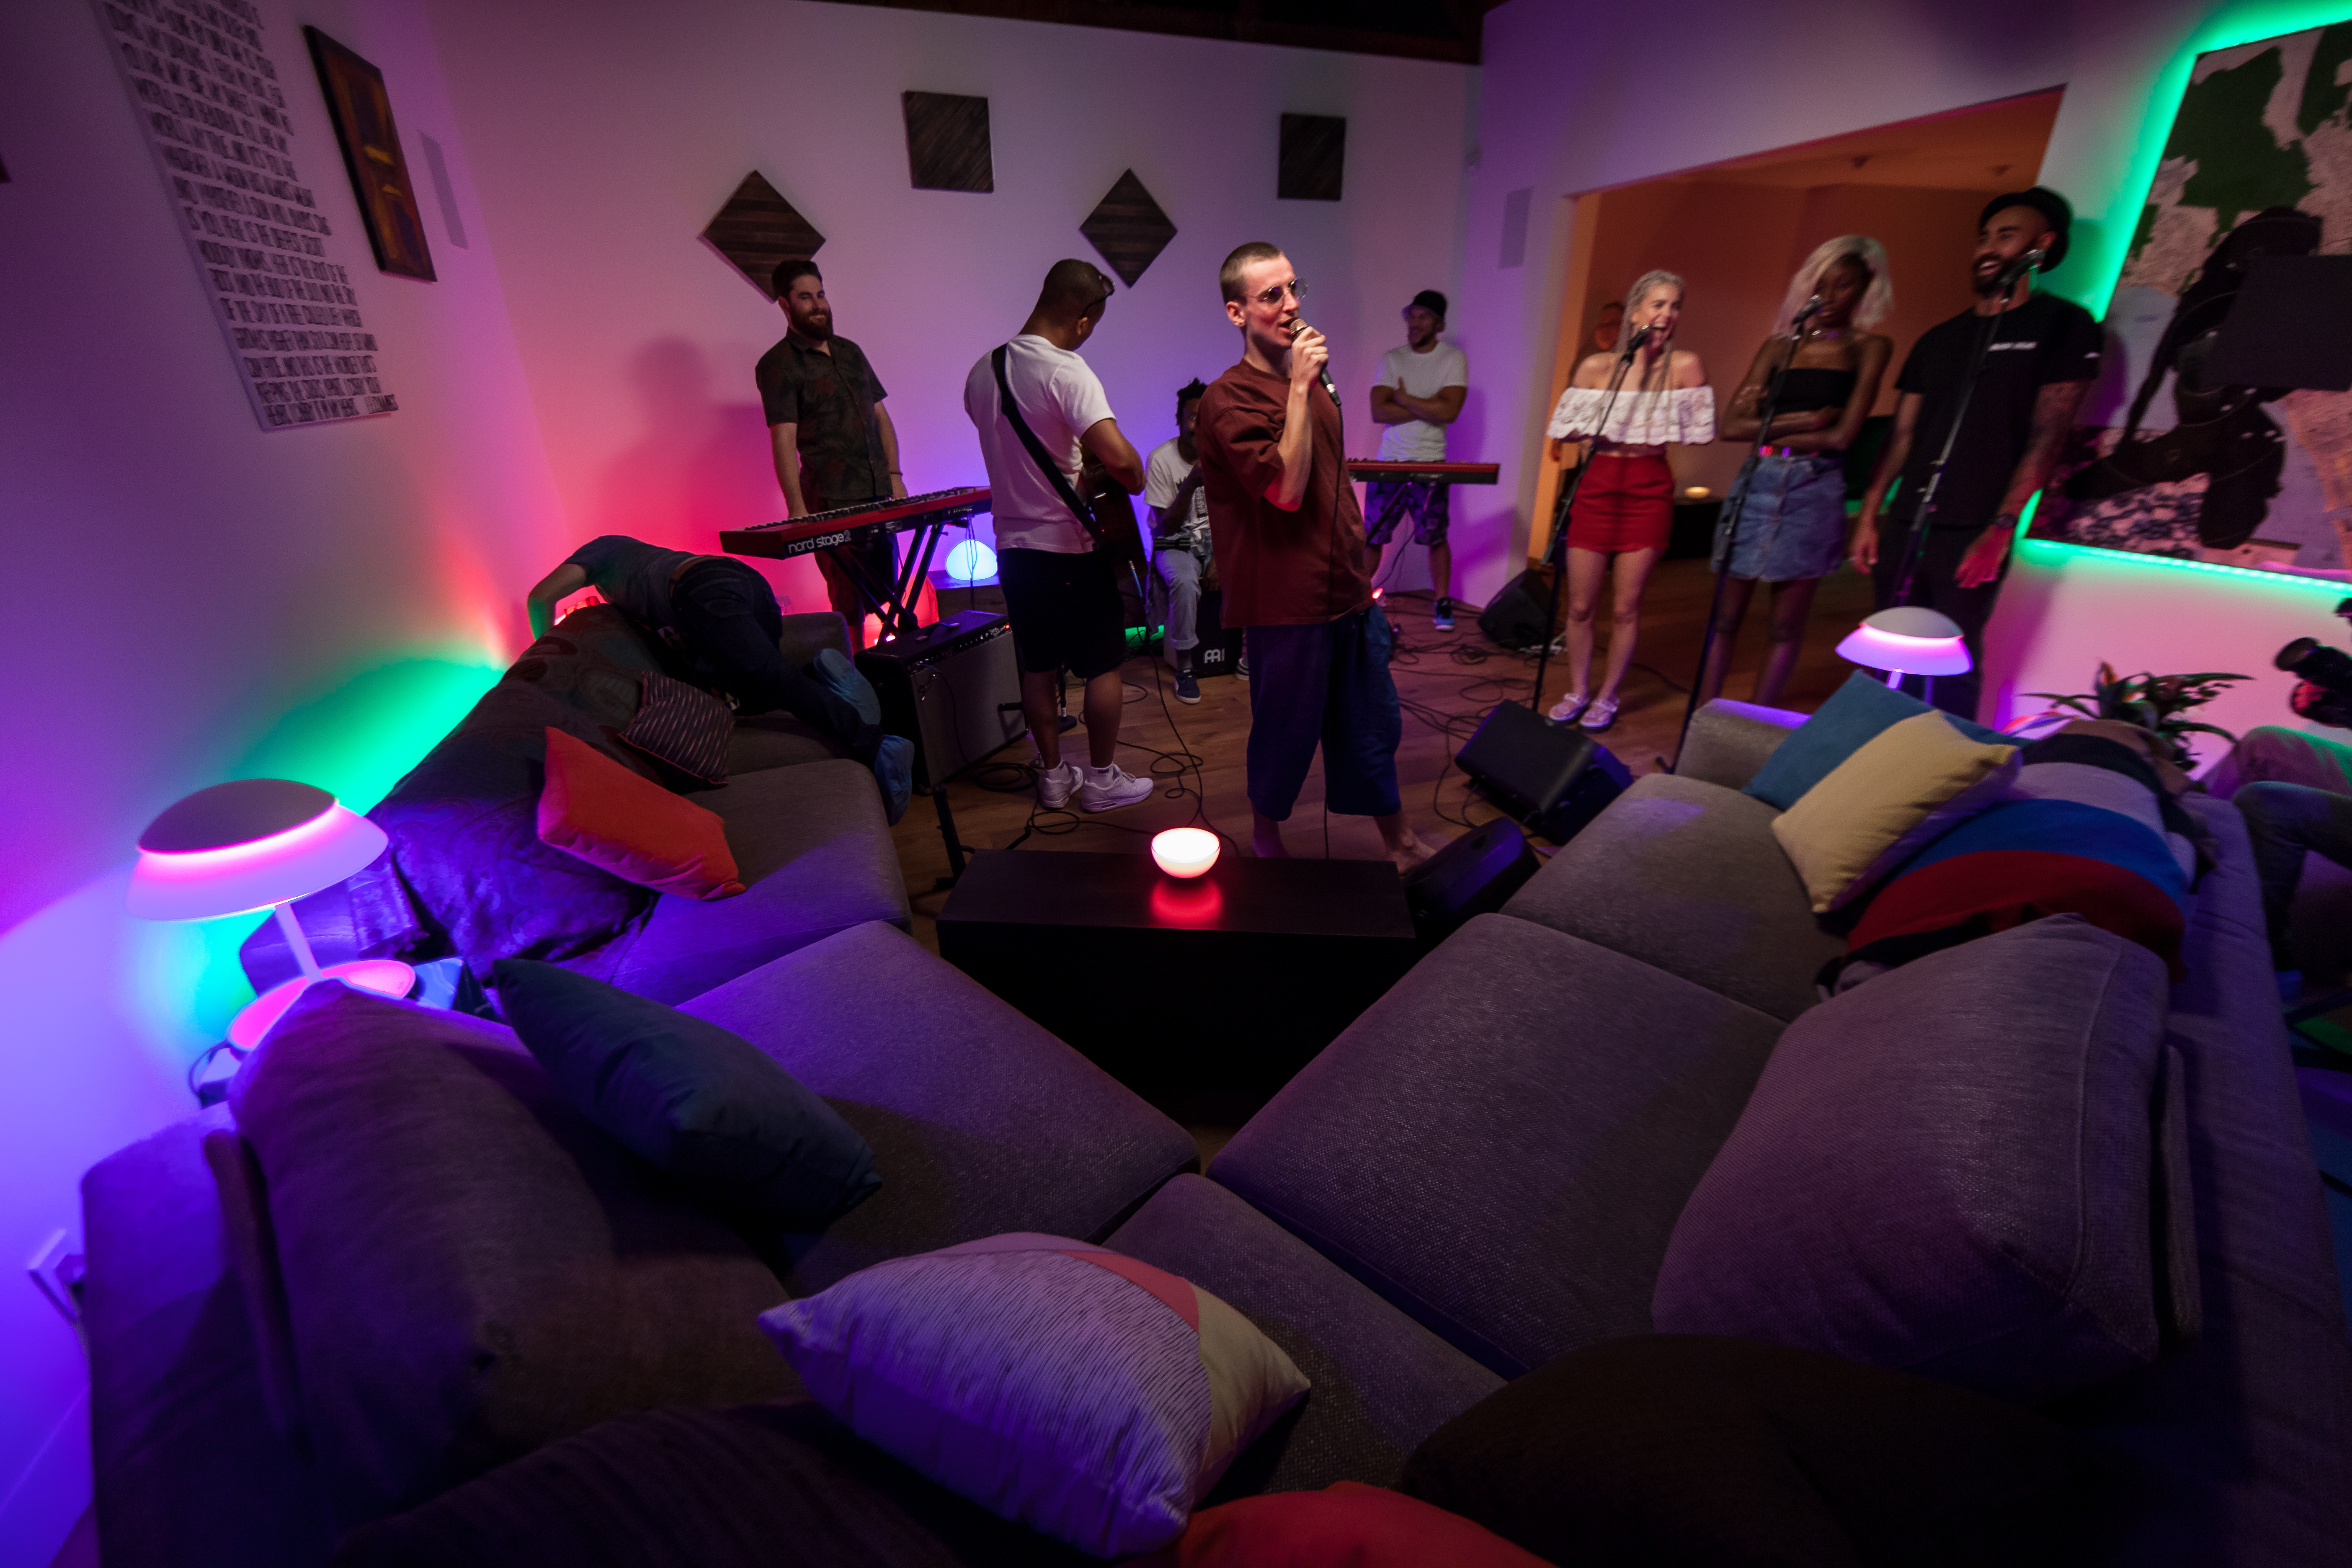 live nation and philips hue connect music and light for fans everywhere